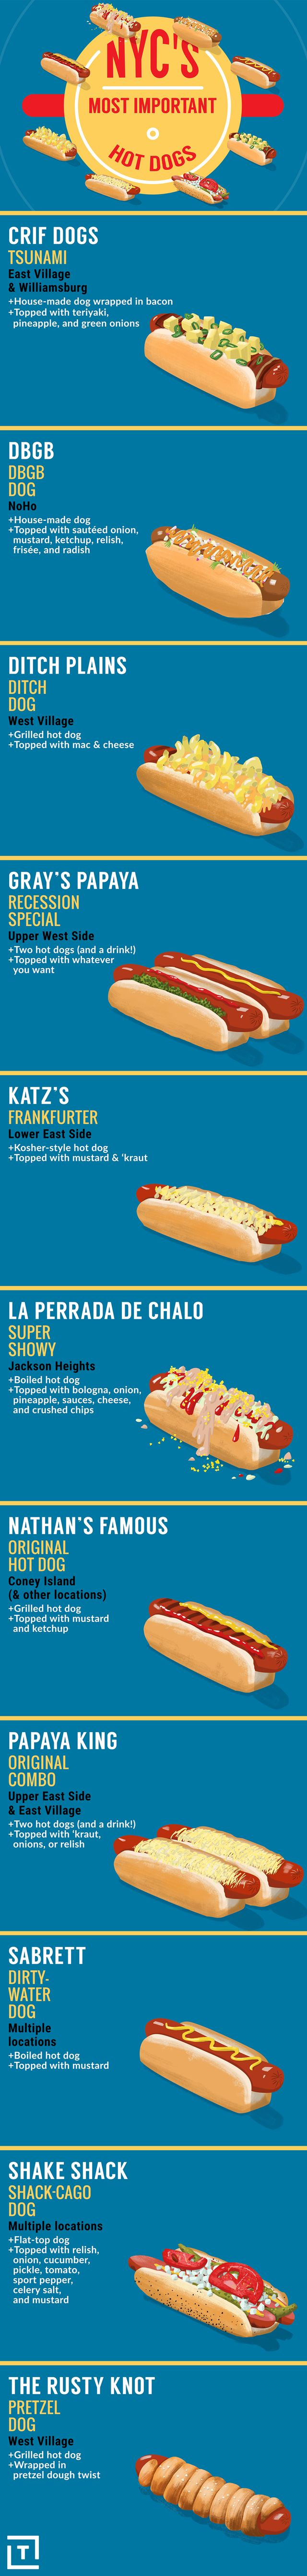 What is your favorite type of NYC hot dog?